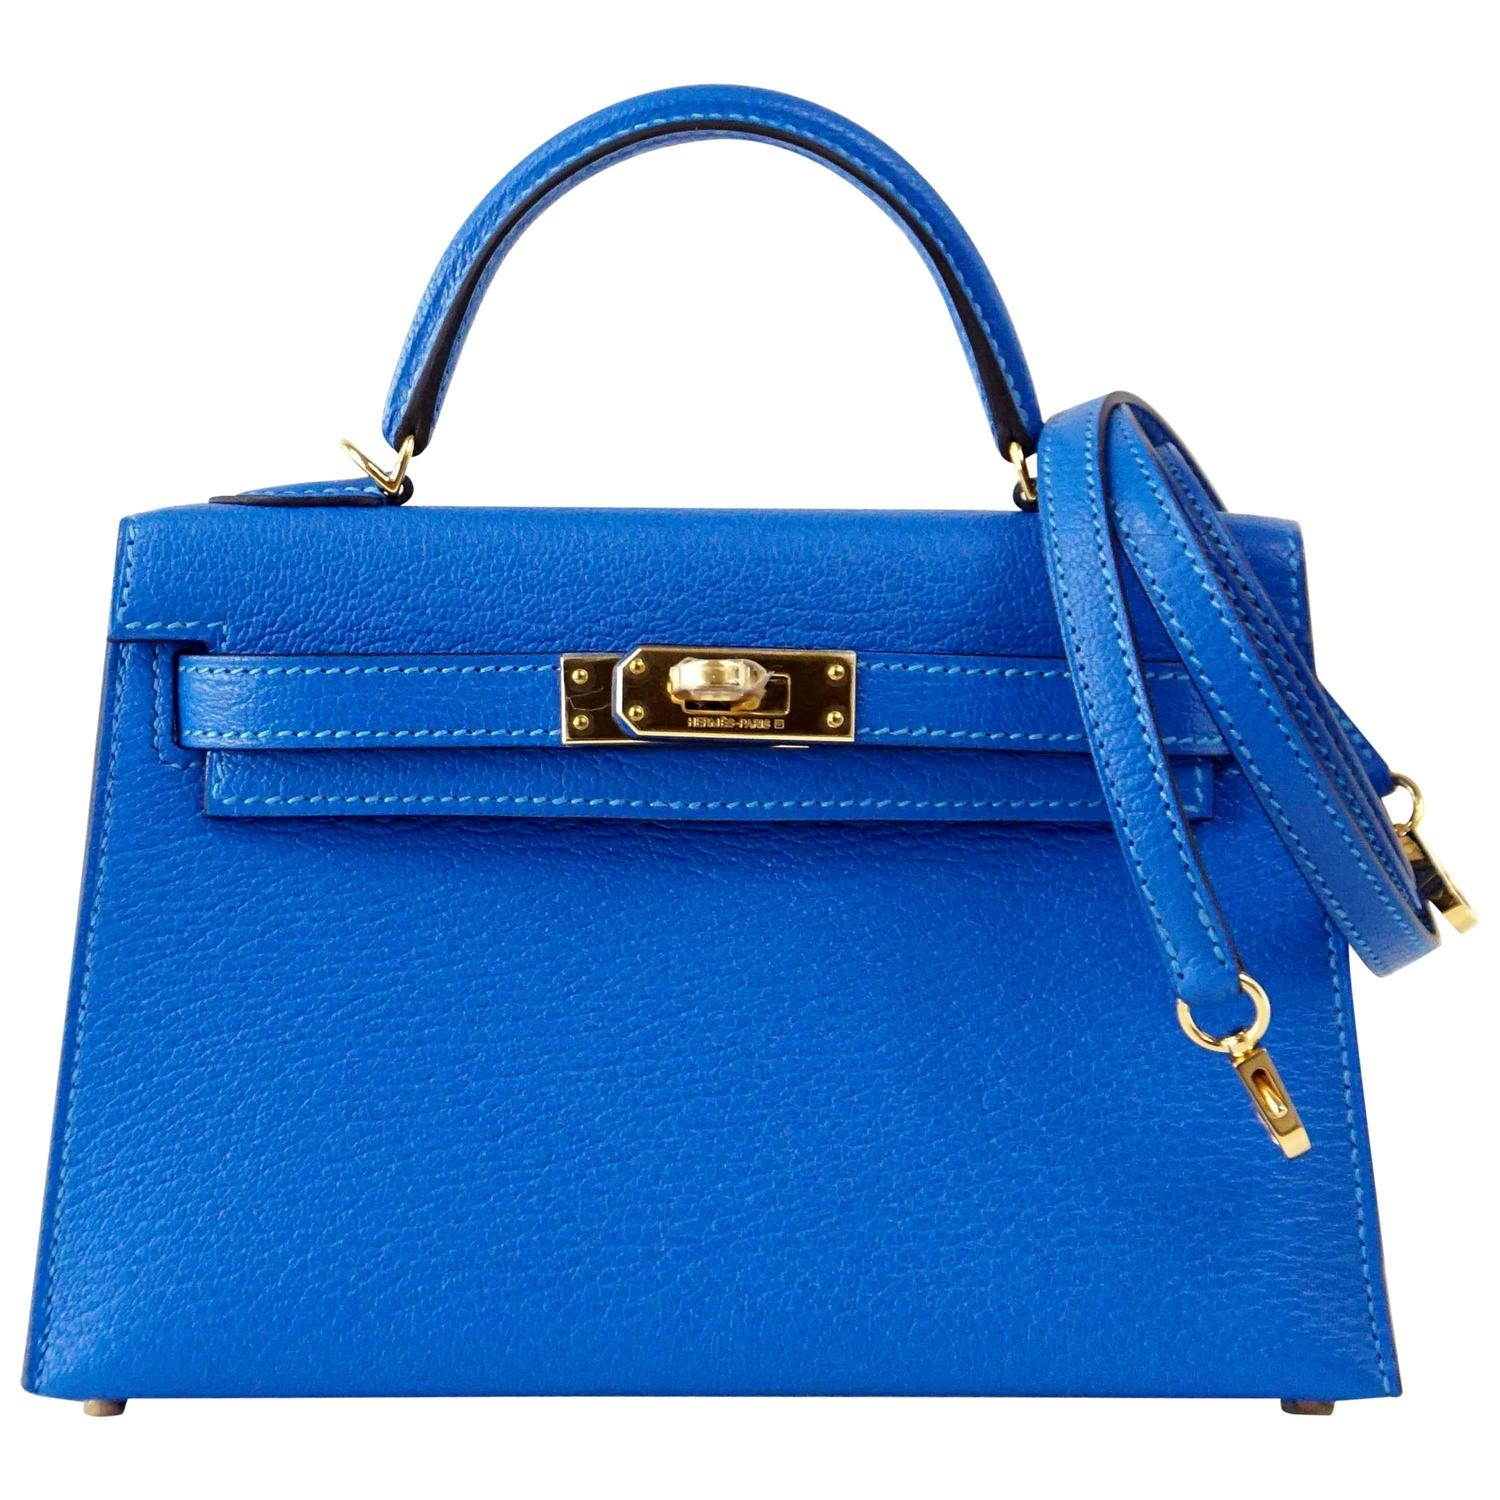 43a64a7f8c ... cheapest hermes kelly bag 20 mini kelly ii blue hydra chevre gold  hardware cd69a 58e16